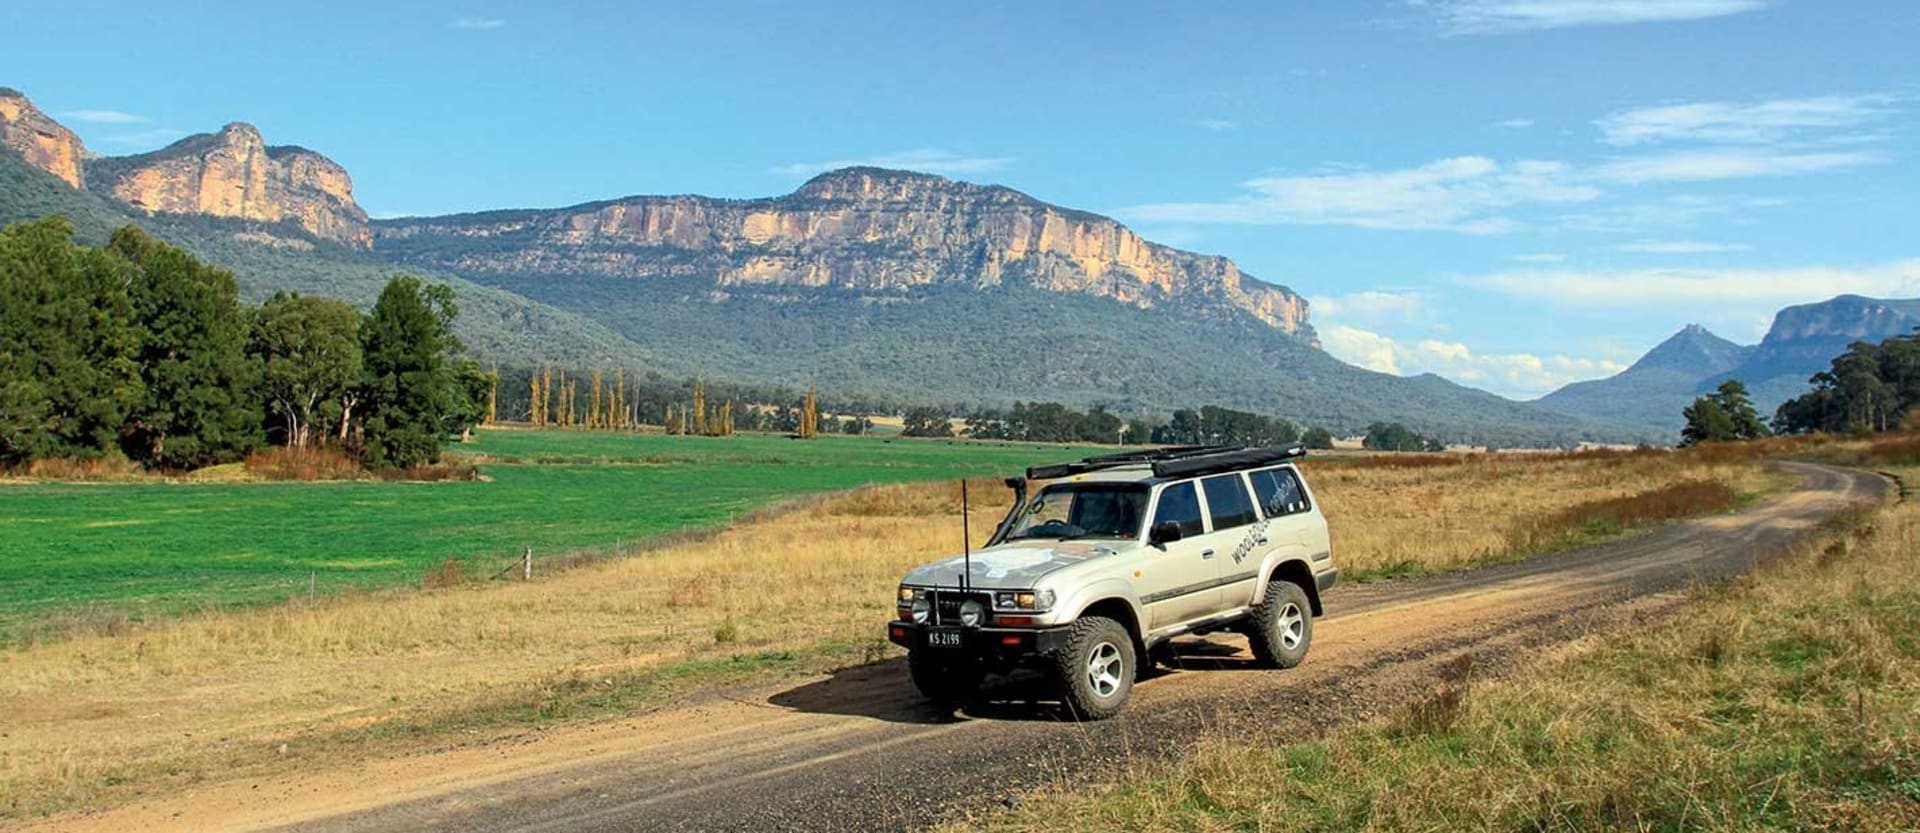 Wollemi National Park 4x4 trip guide